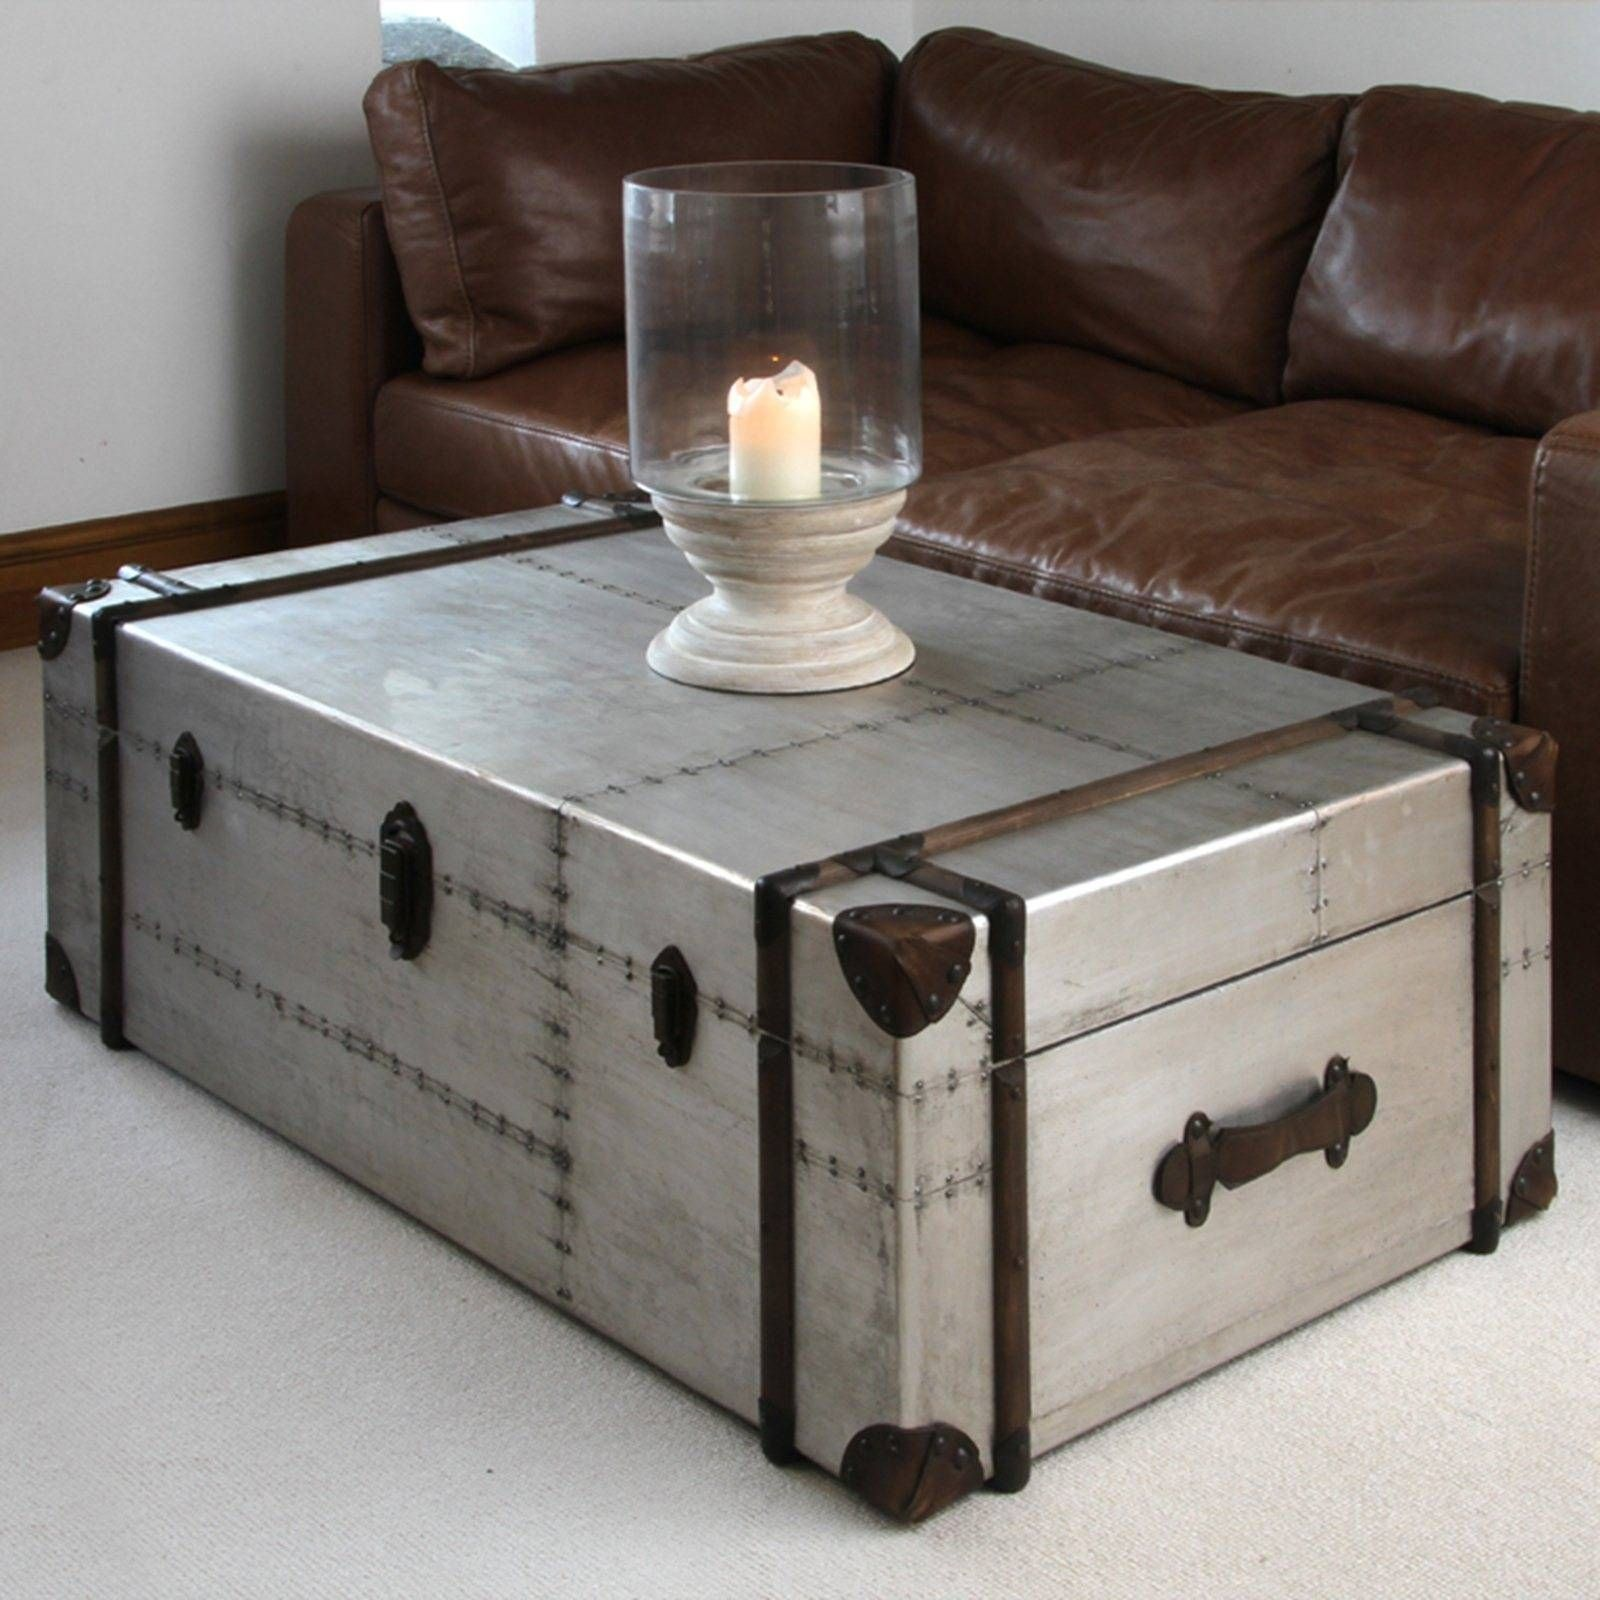 Silver Trunk Coffee Tables Coffee Table Trunk Chest Coffee Table Silver Coffee Table [ 1600 x 1600 Pixel ]